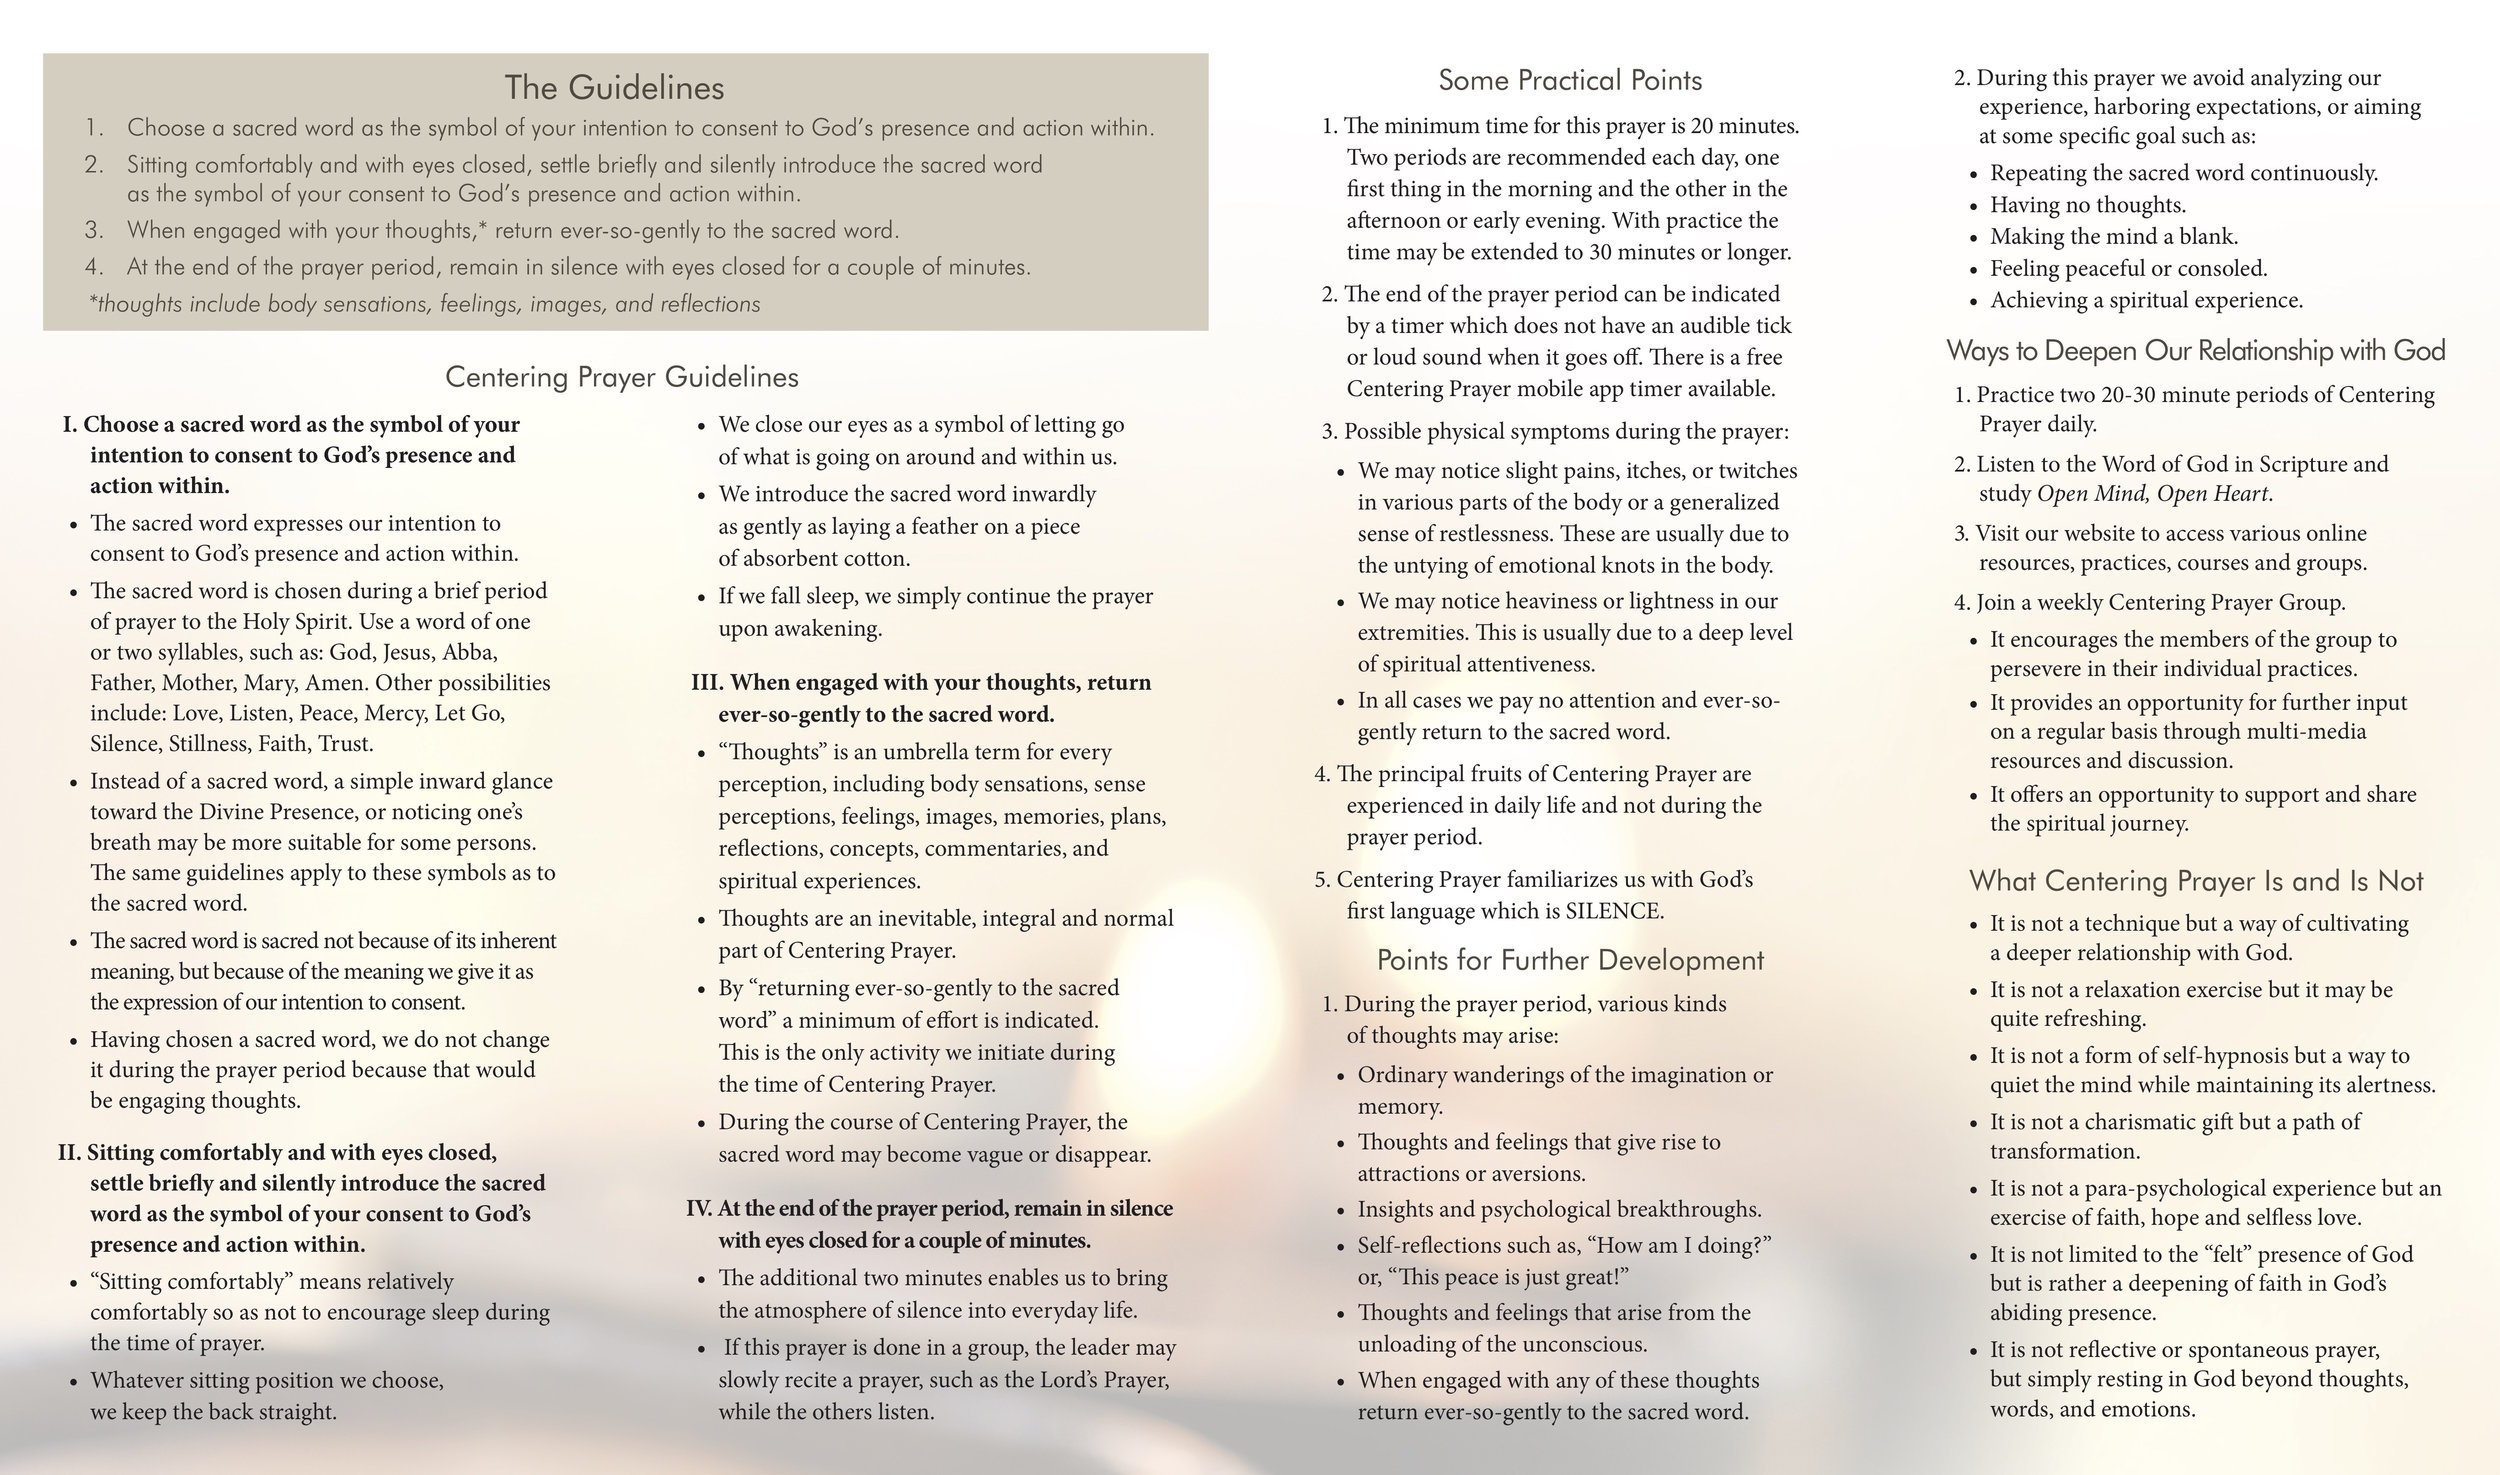 Centering Prayer Guidlines    via https://www.contemplativeoutreach.org